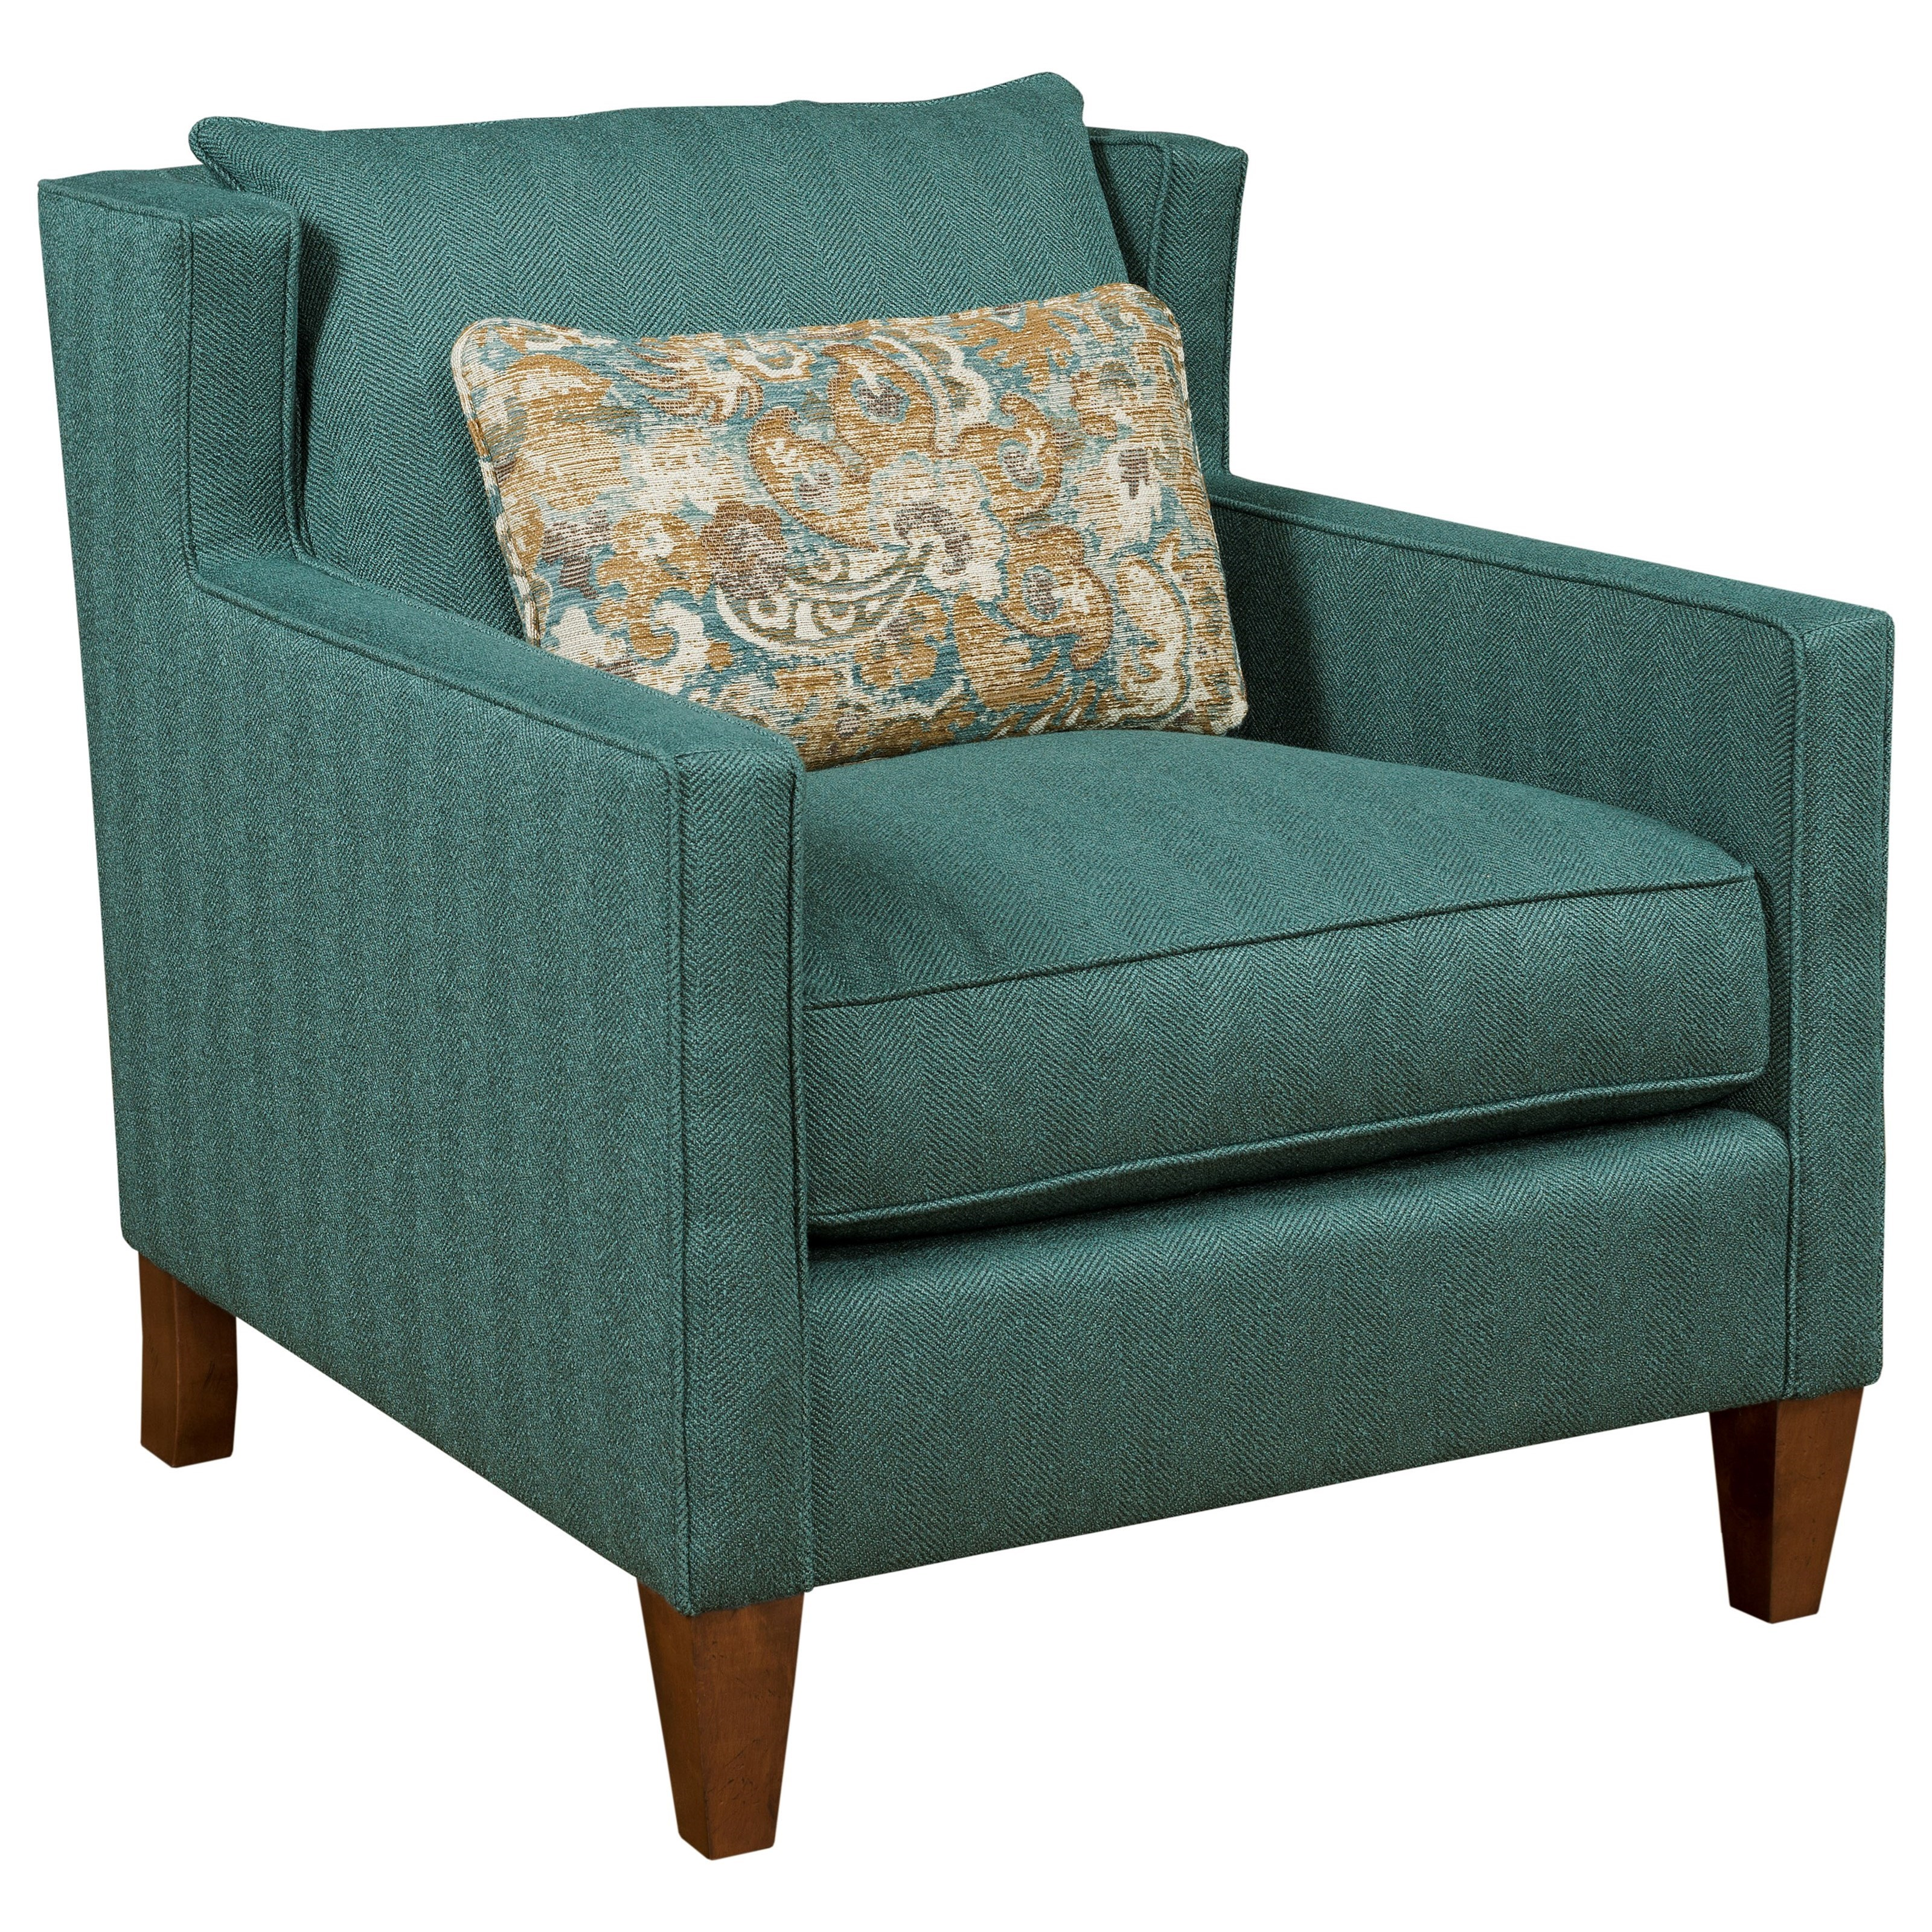 Alta Upholstered Chair by Kincaid Furniture at Johnny Janosik